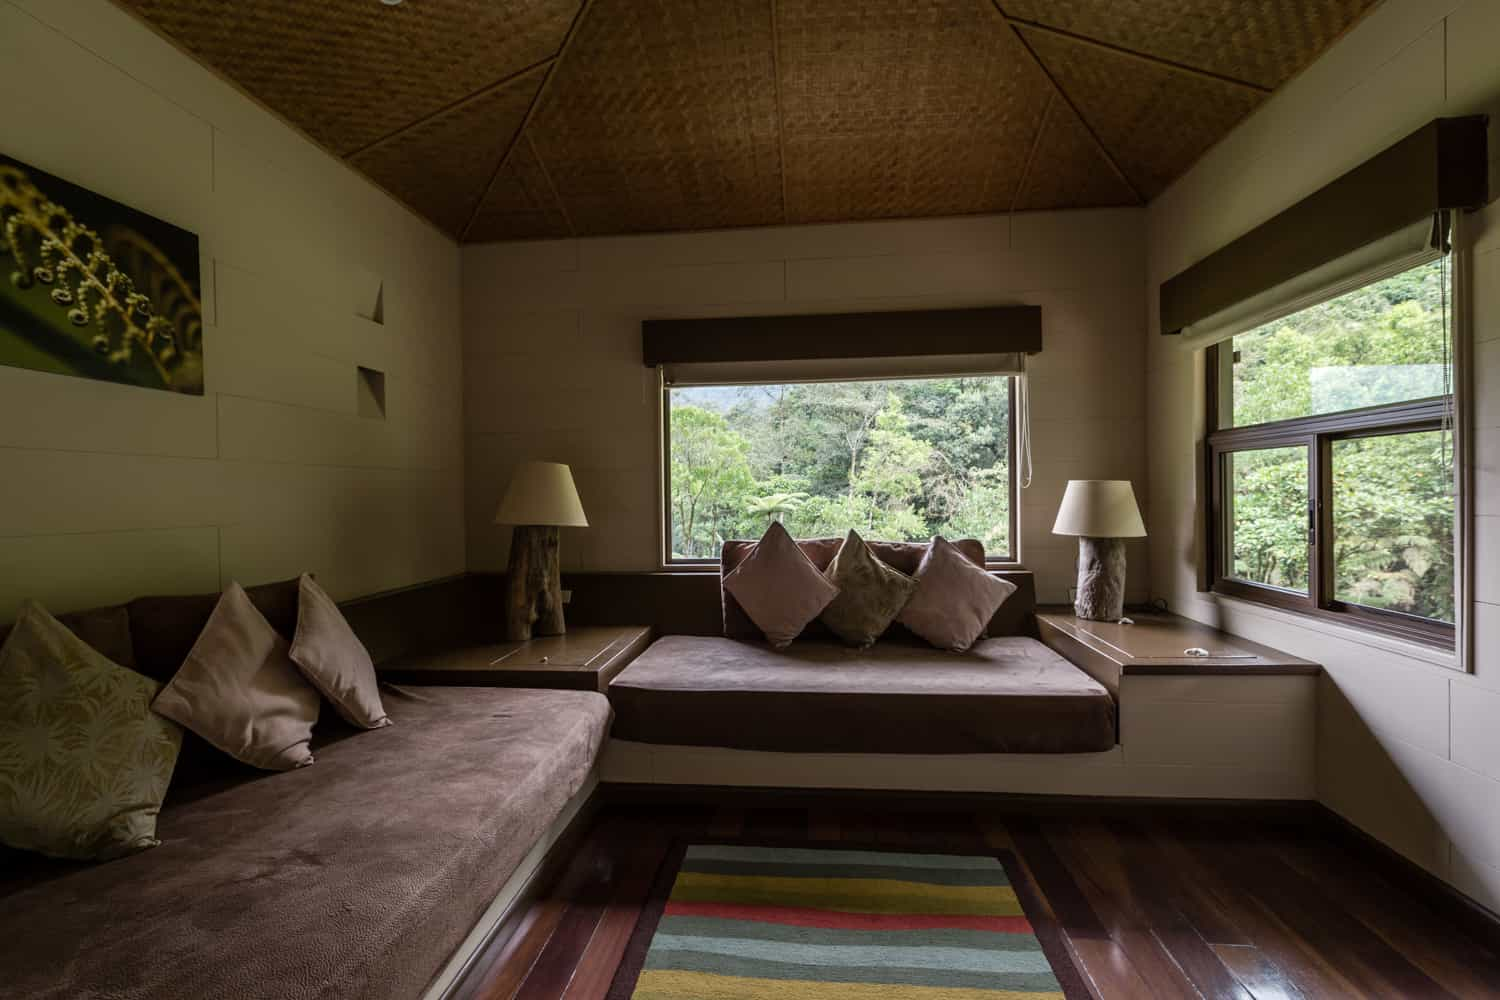 Large windows with views of cloudforest and river in seating area.